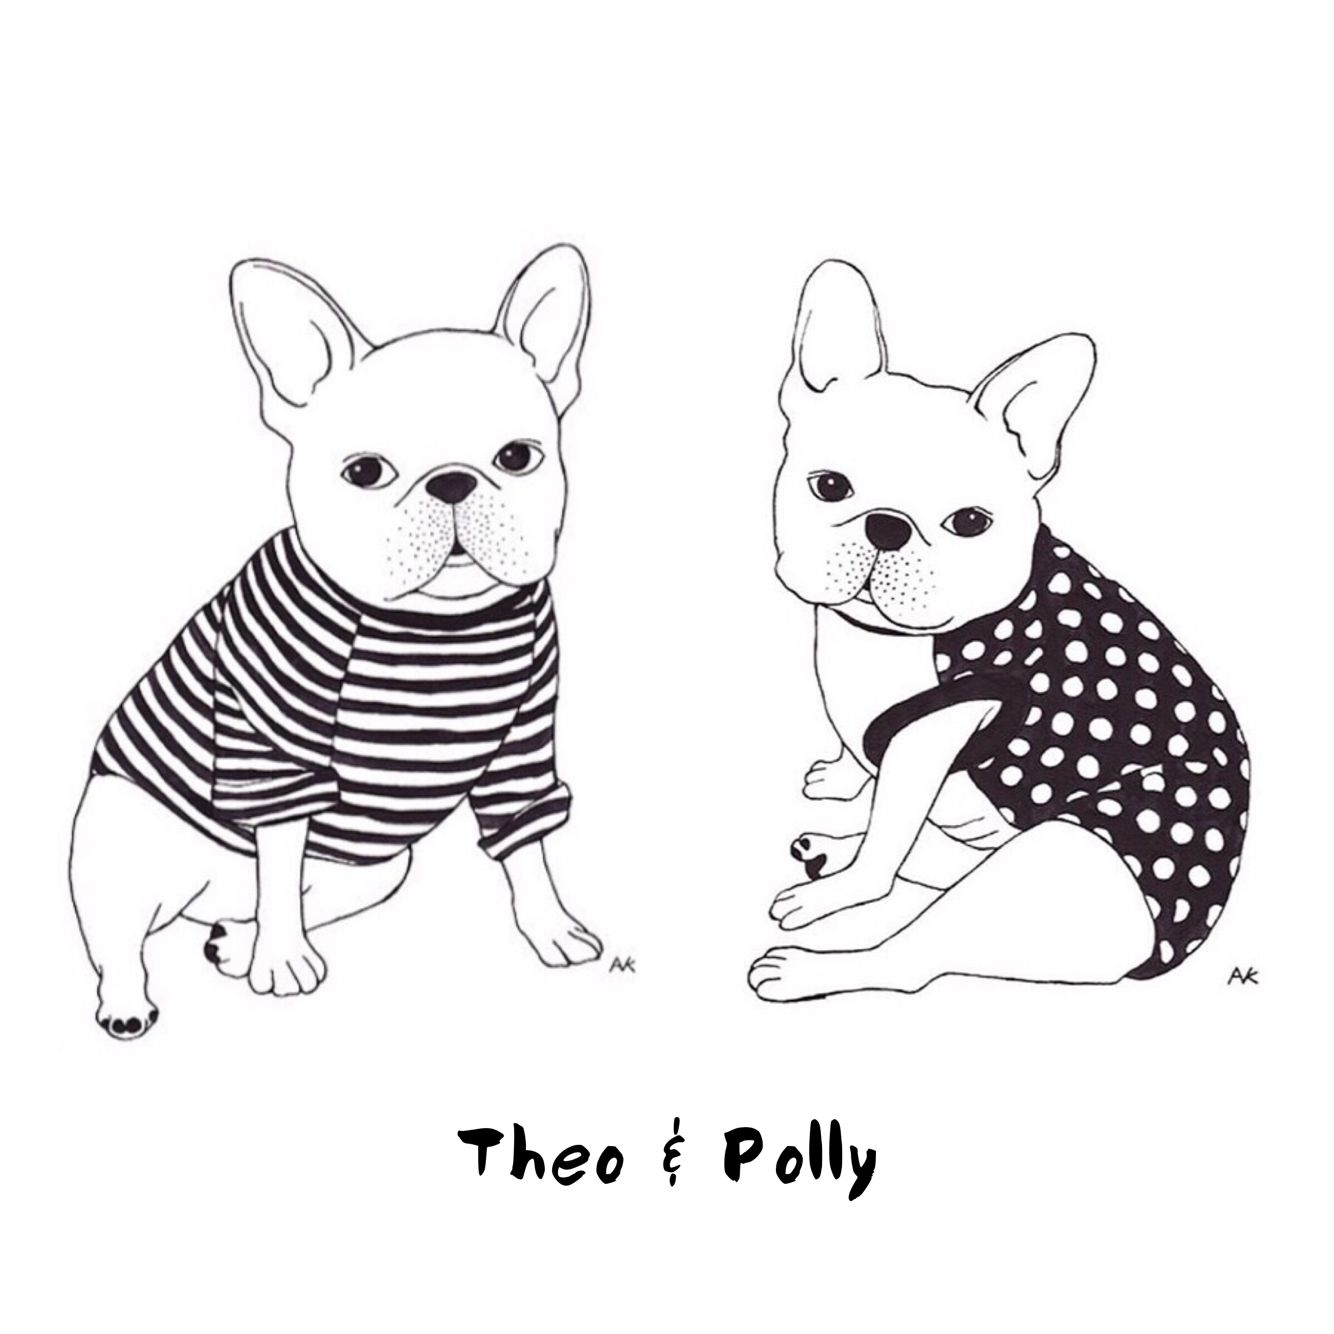 Theo Amp Polly In Pipolli